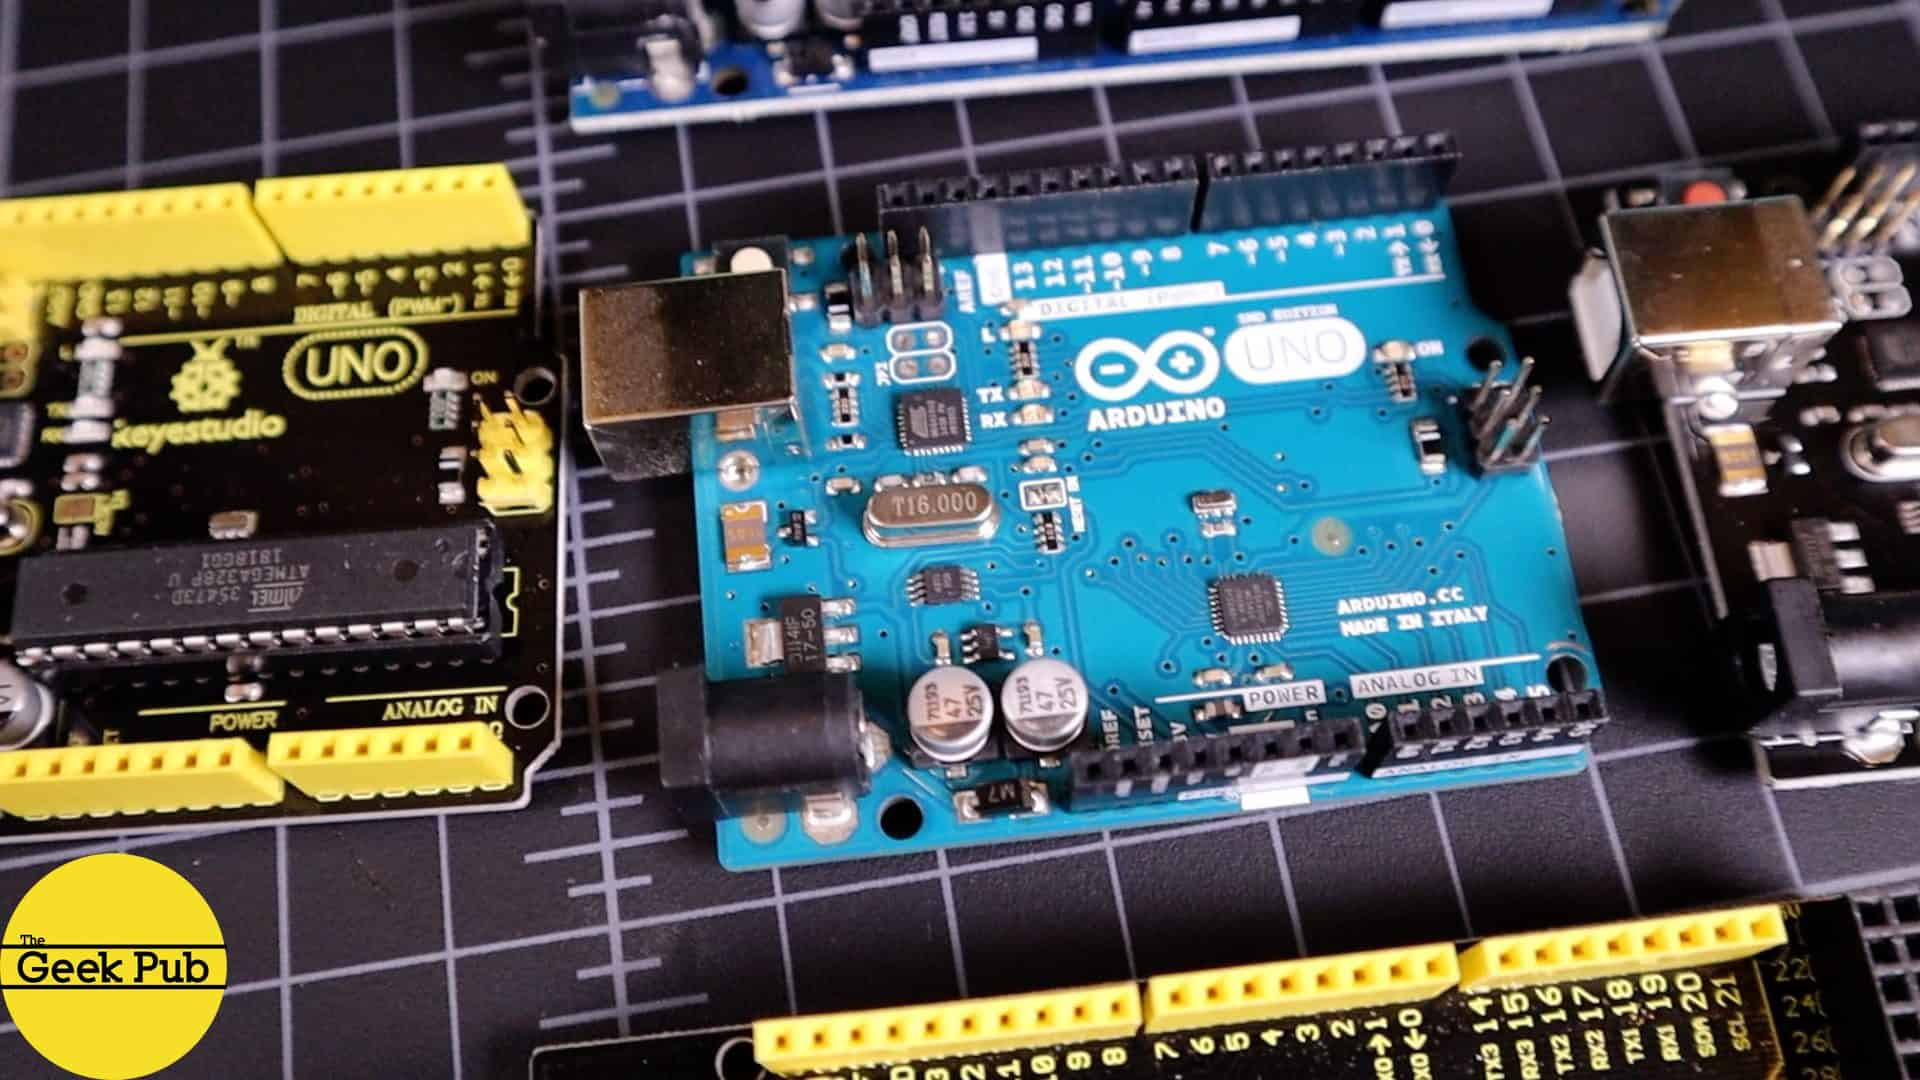 Teensy vs  Arduino: What's the difference? - The Geek Pub